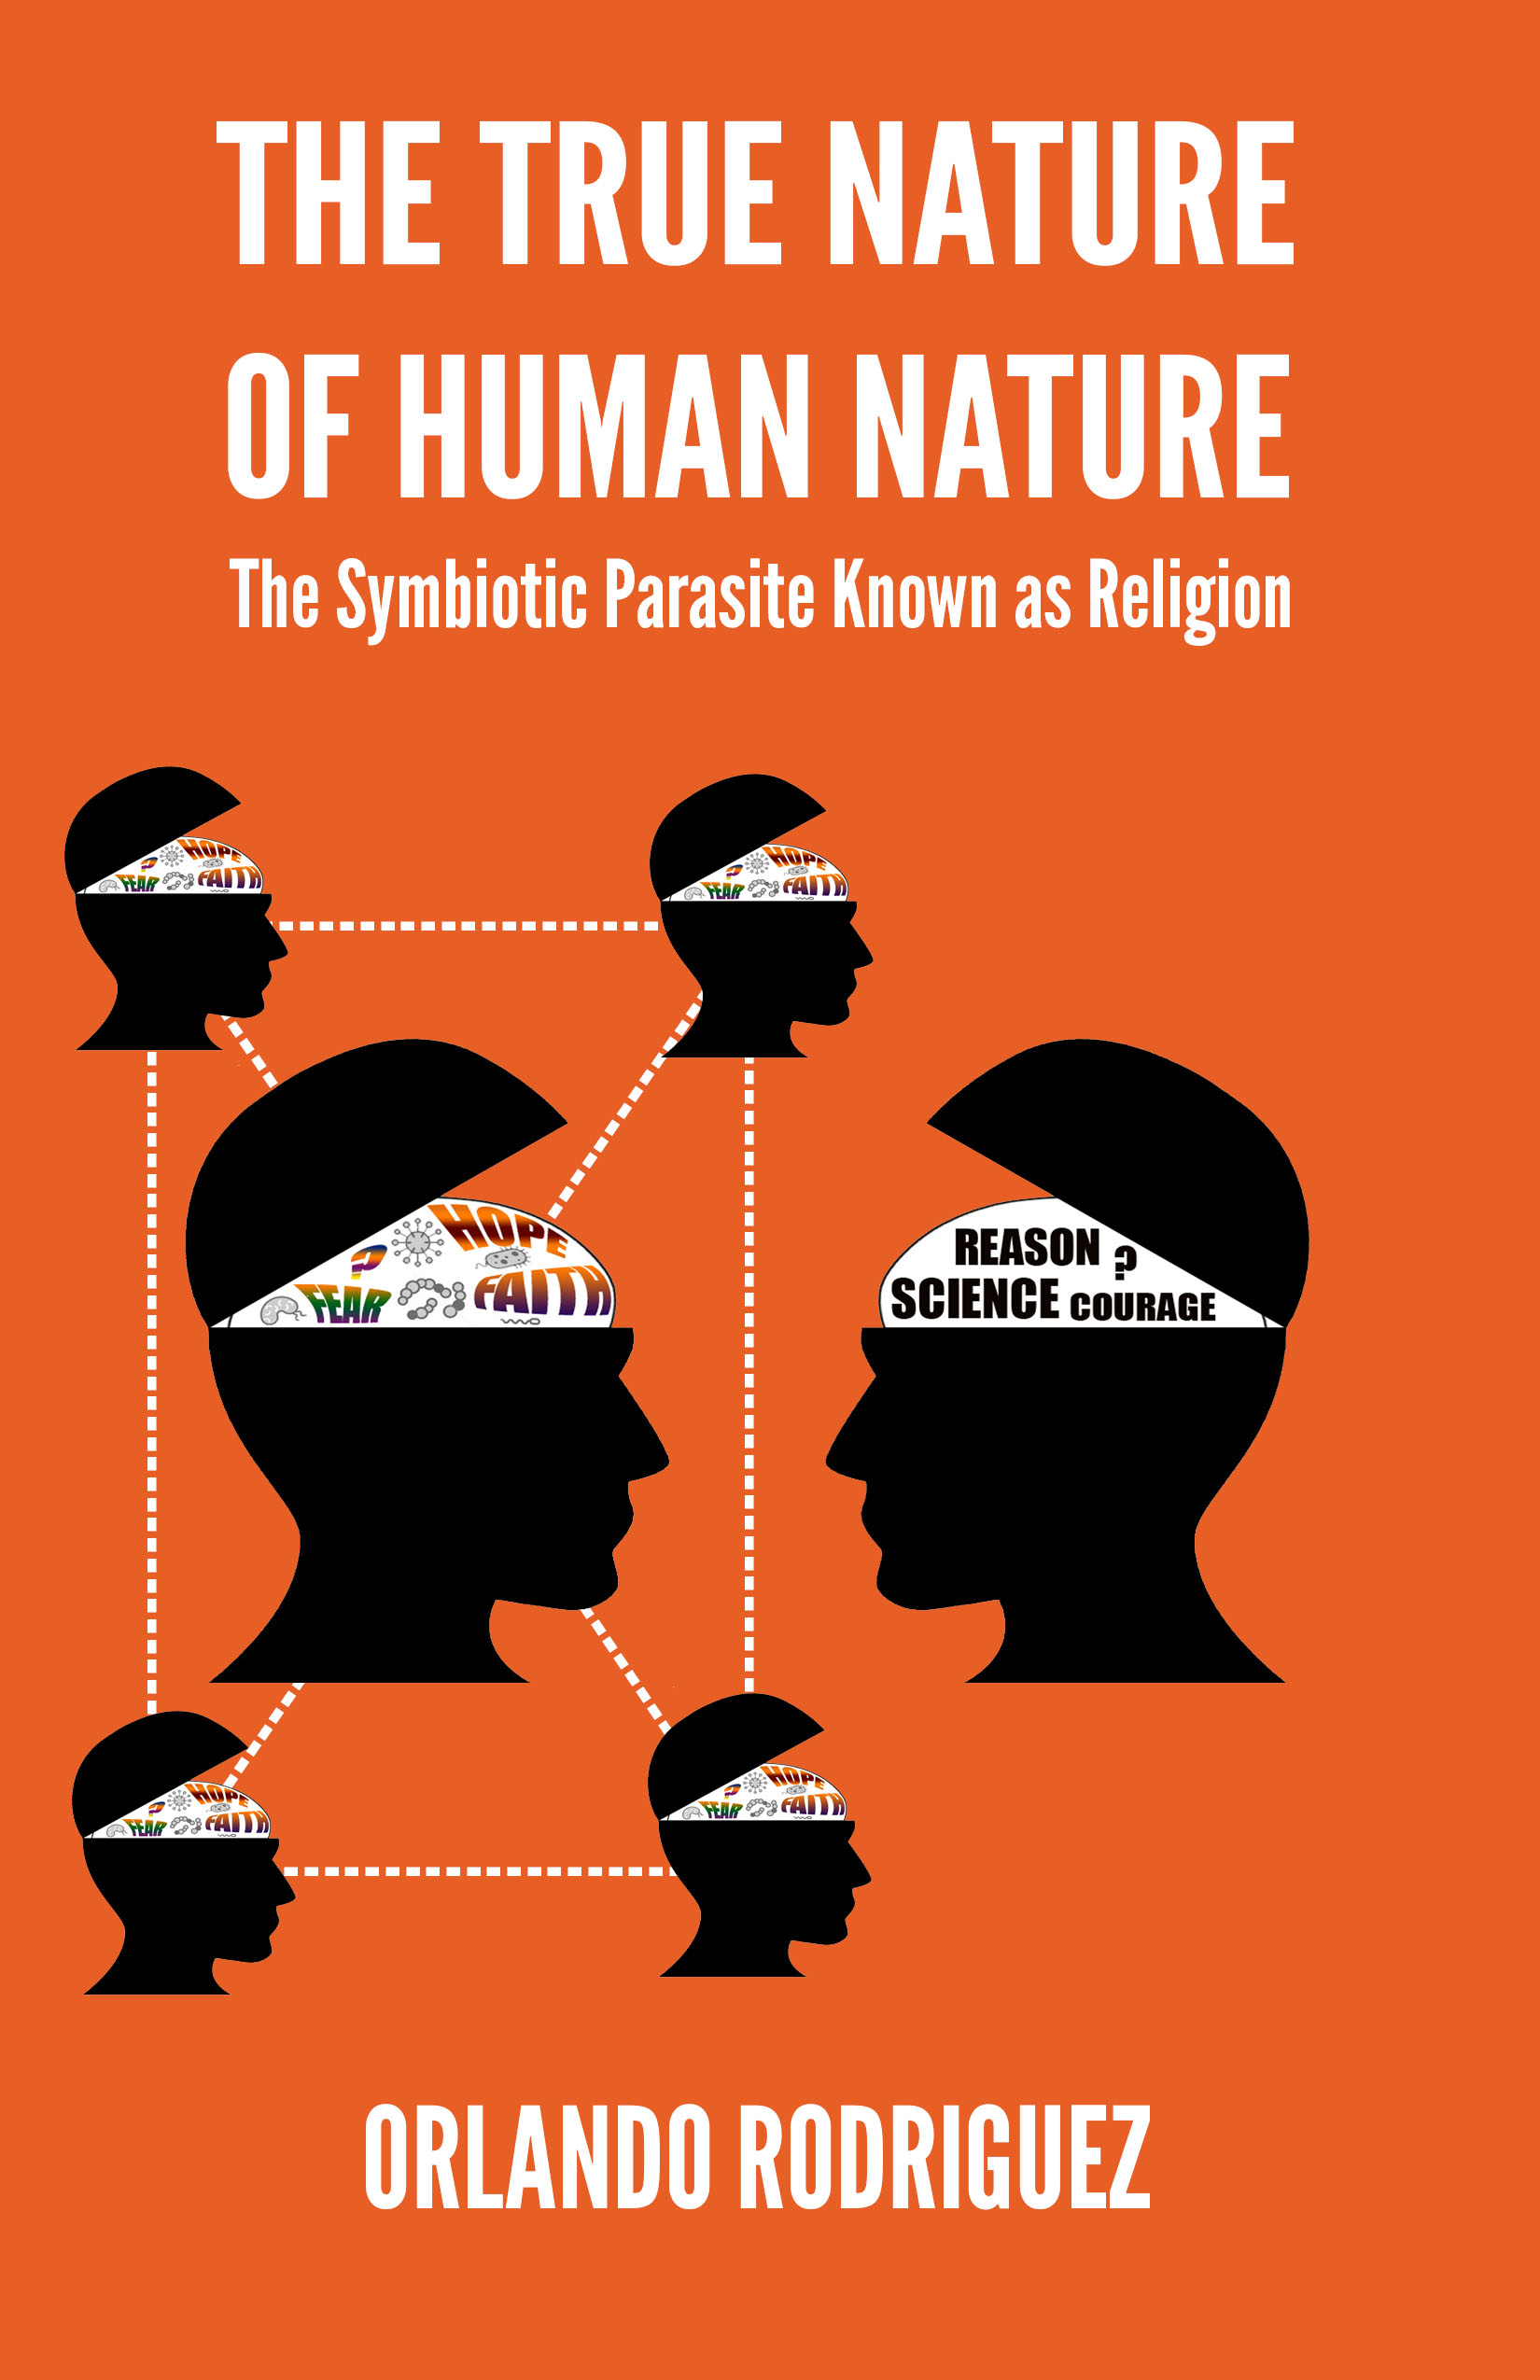 How would i write an essay about human relate to symbiosis?